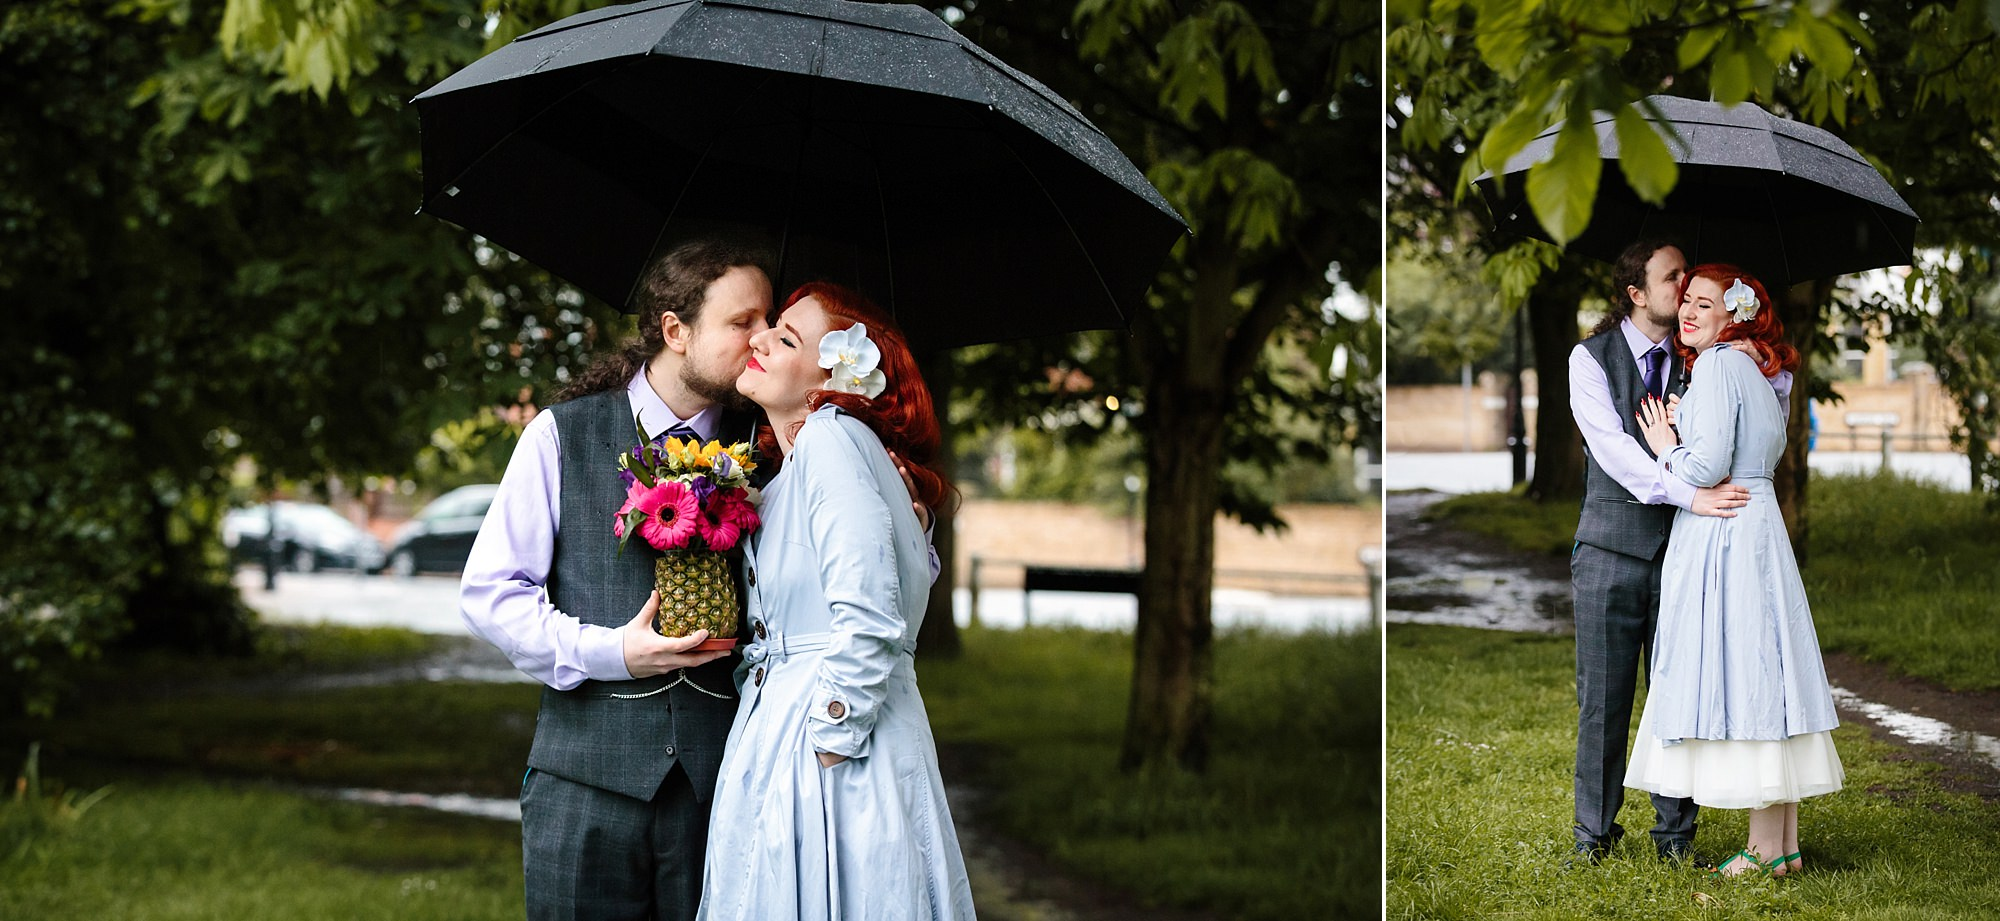 The Grange Ealing wedding bride and groom with tropical flowers under umbrella